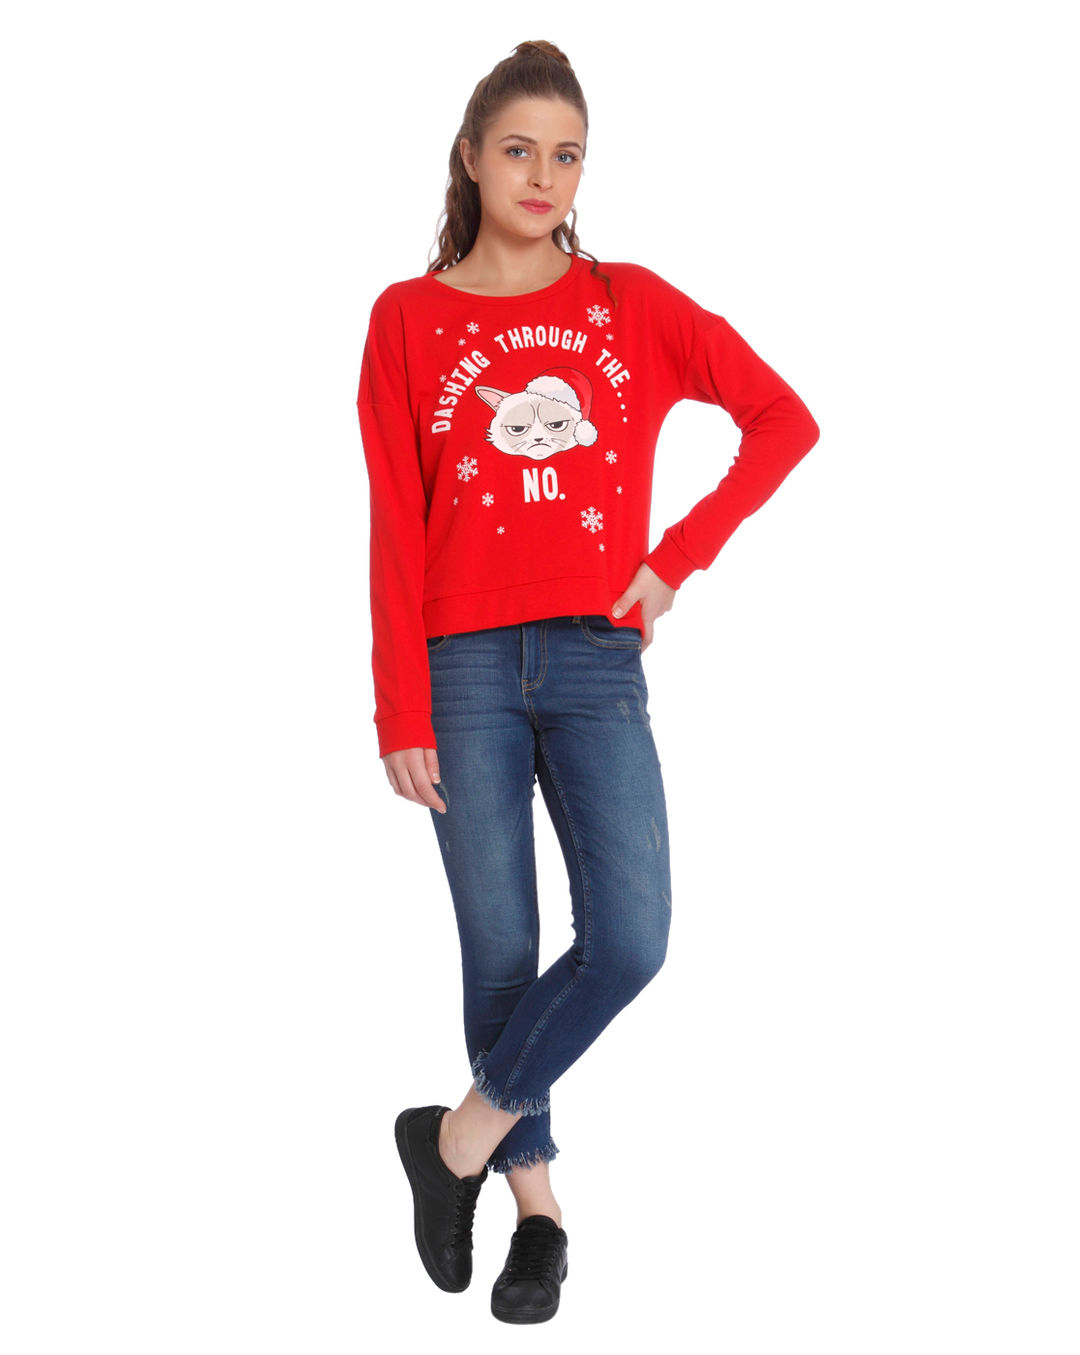 2 Person Christmas Sweater.Printed Casual Christmas Sweater